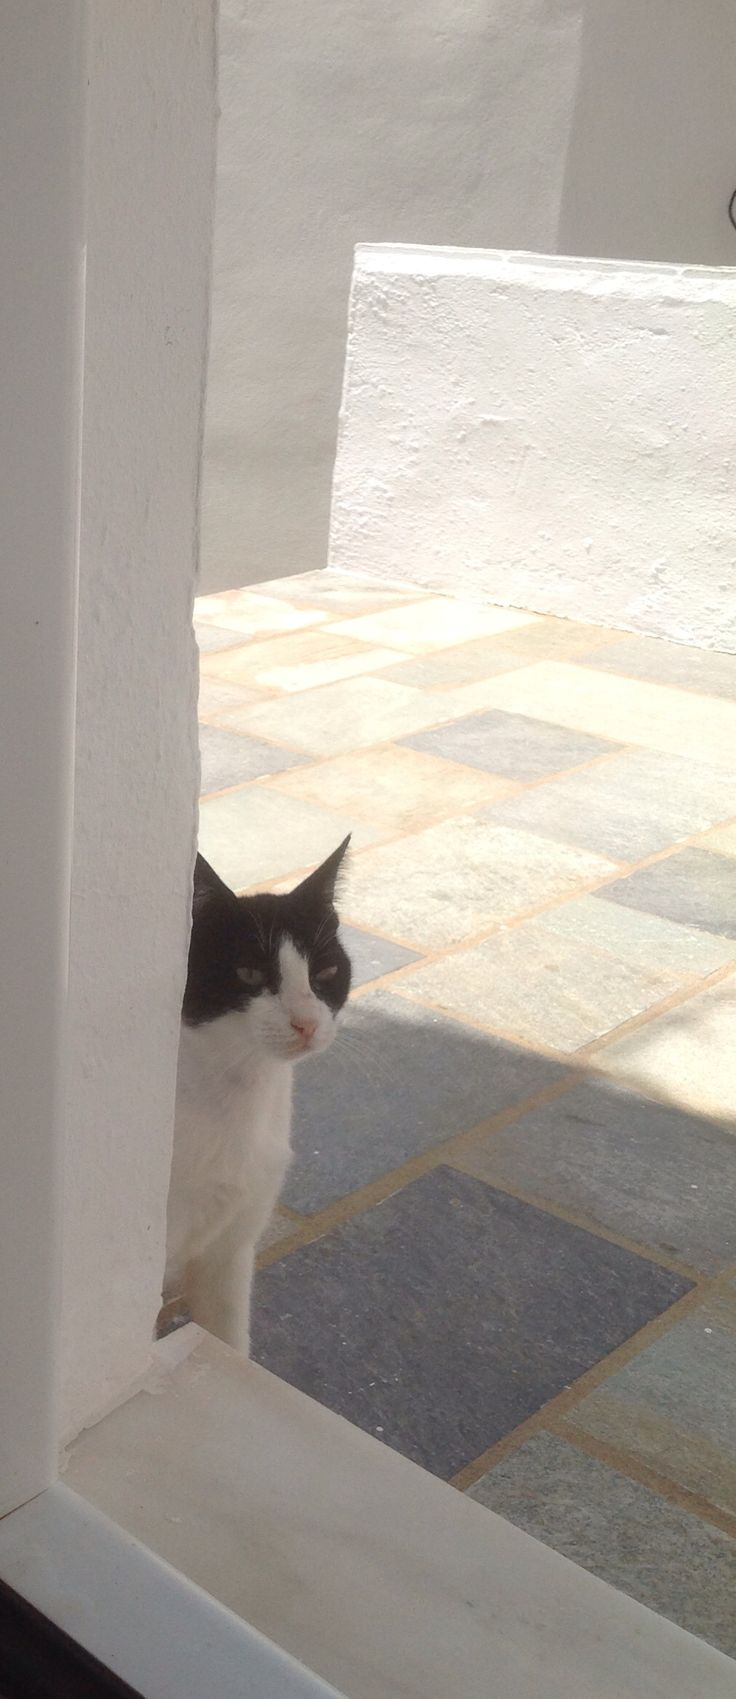 Serifos cat July 2014